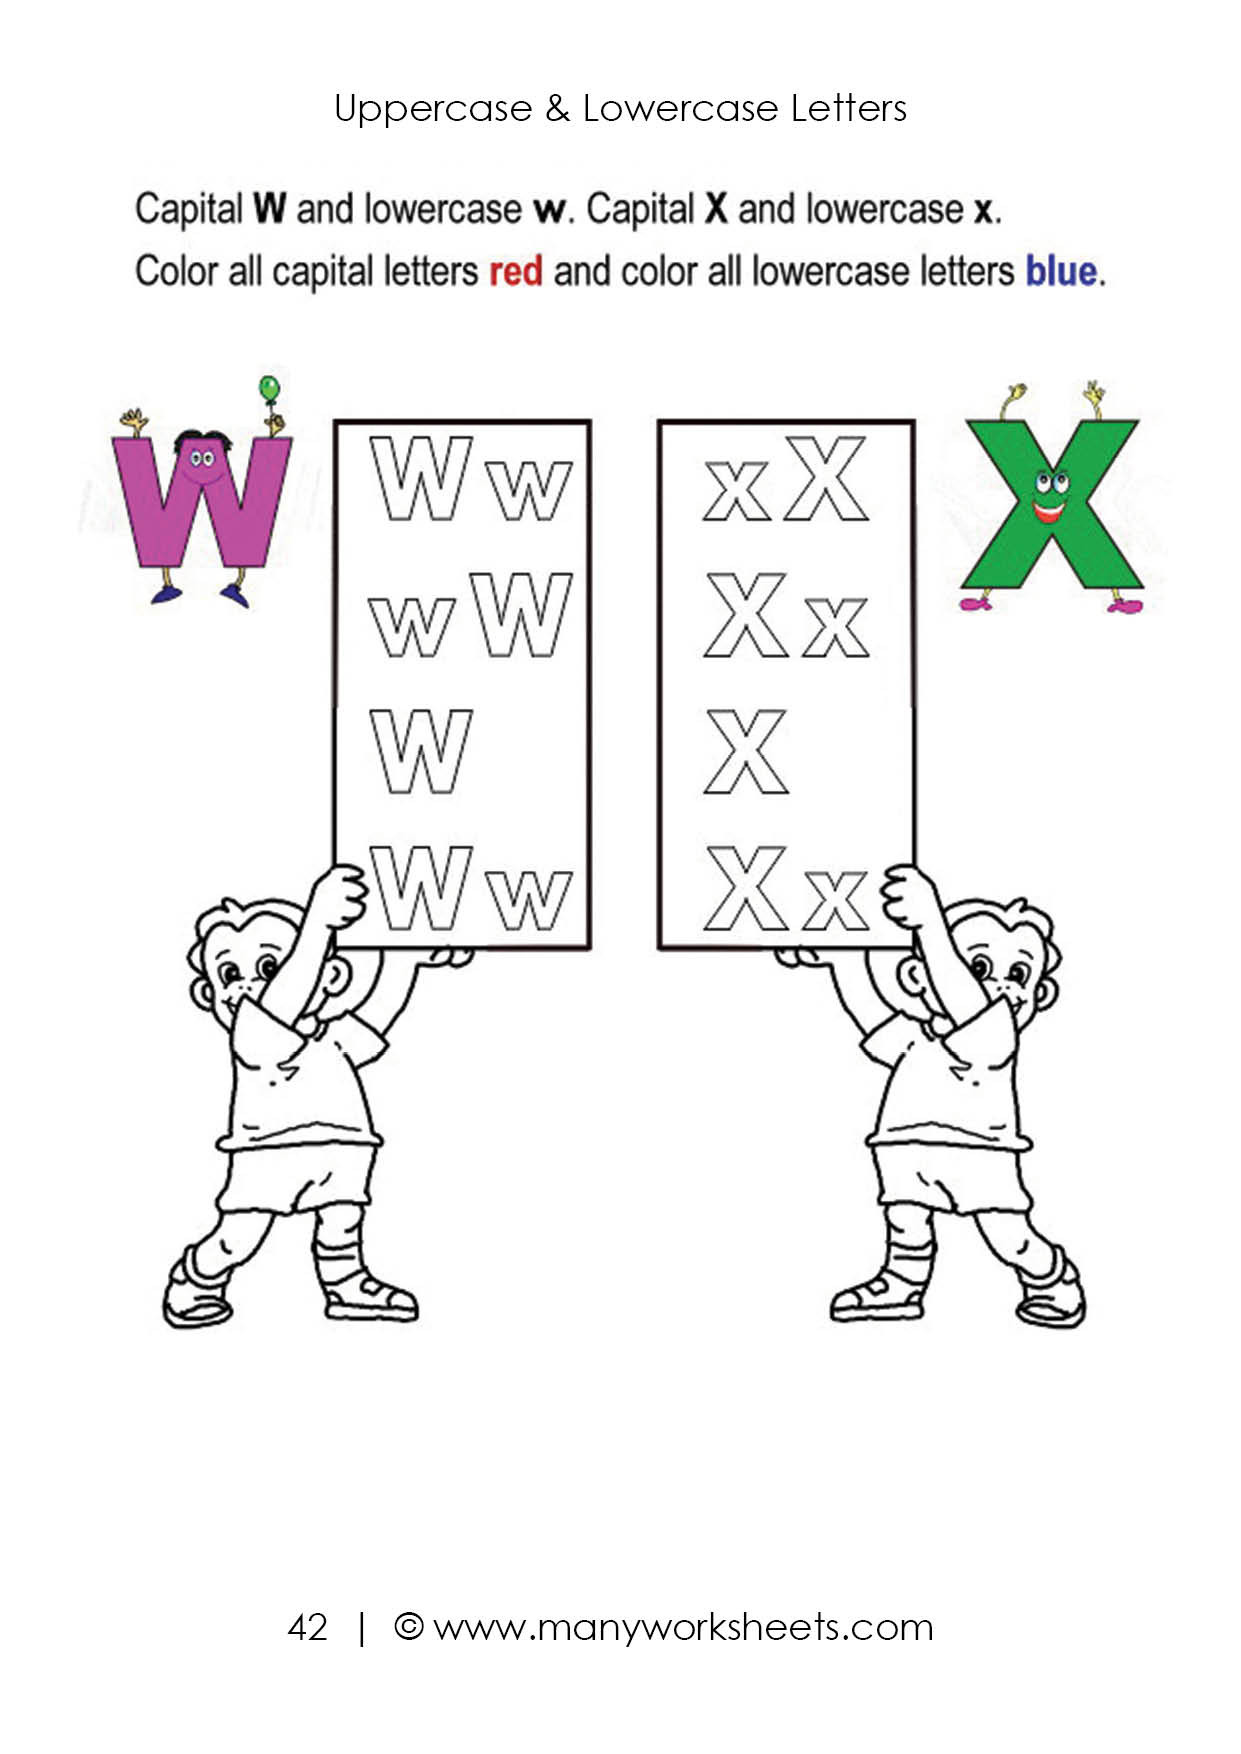 Letter Recognition Worksheets for Kindergarten Uppercase and Lowercase Letters Recognition Worksheet